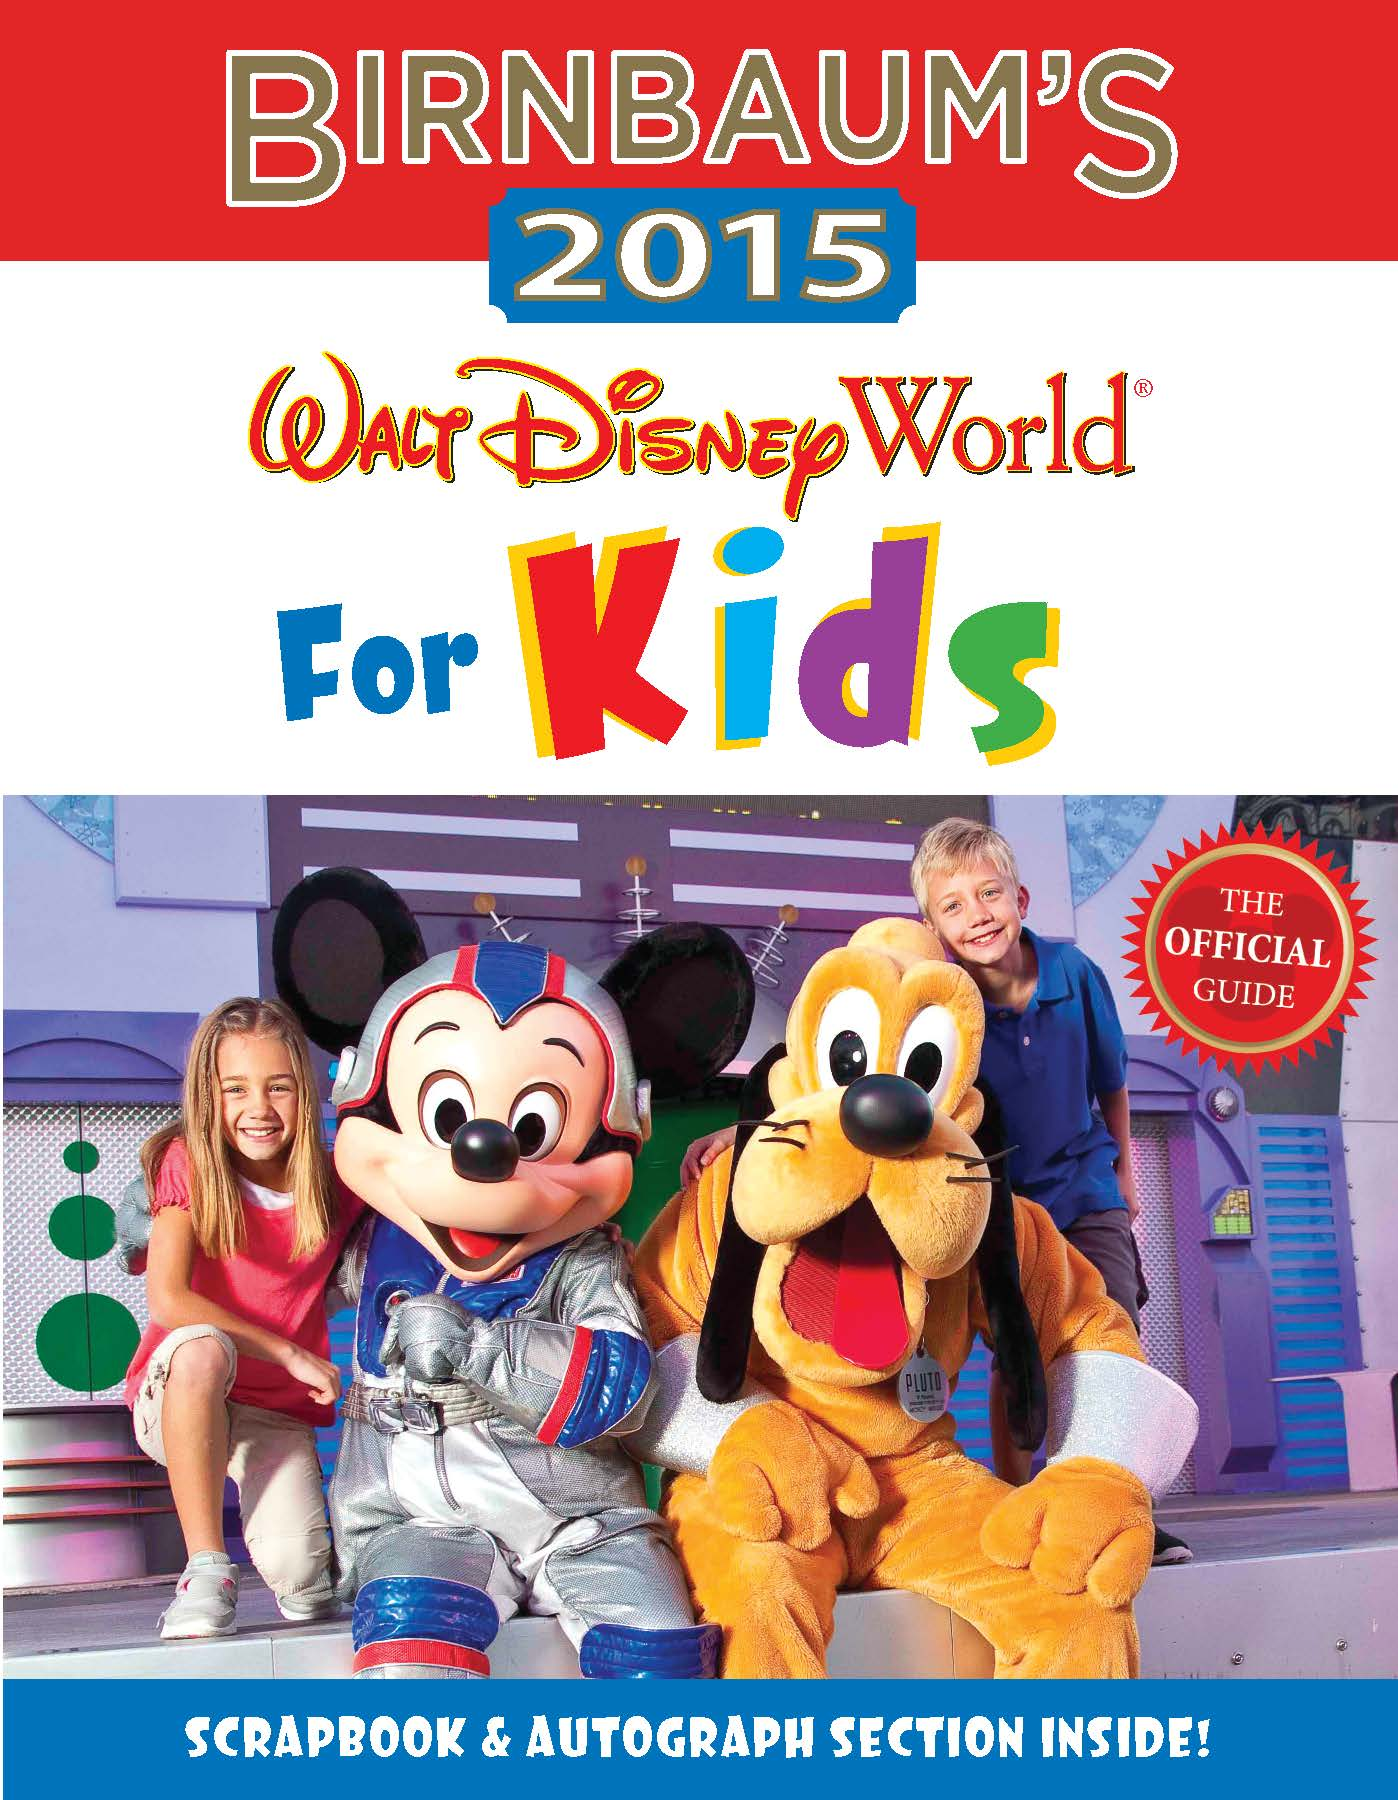 Birnbaum's 2015 Walt Disney World For Kids